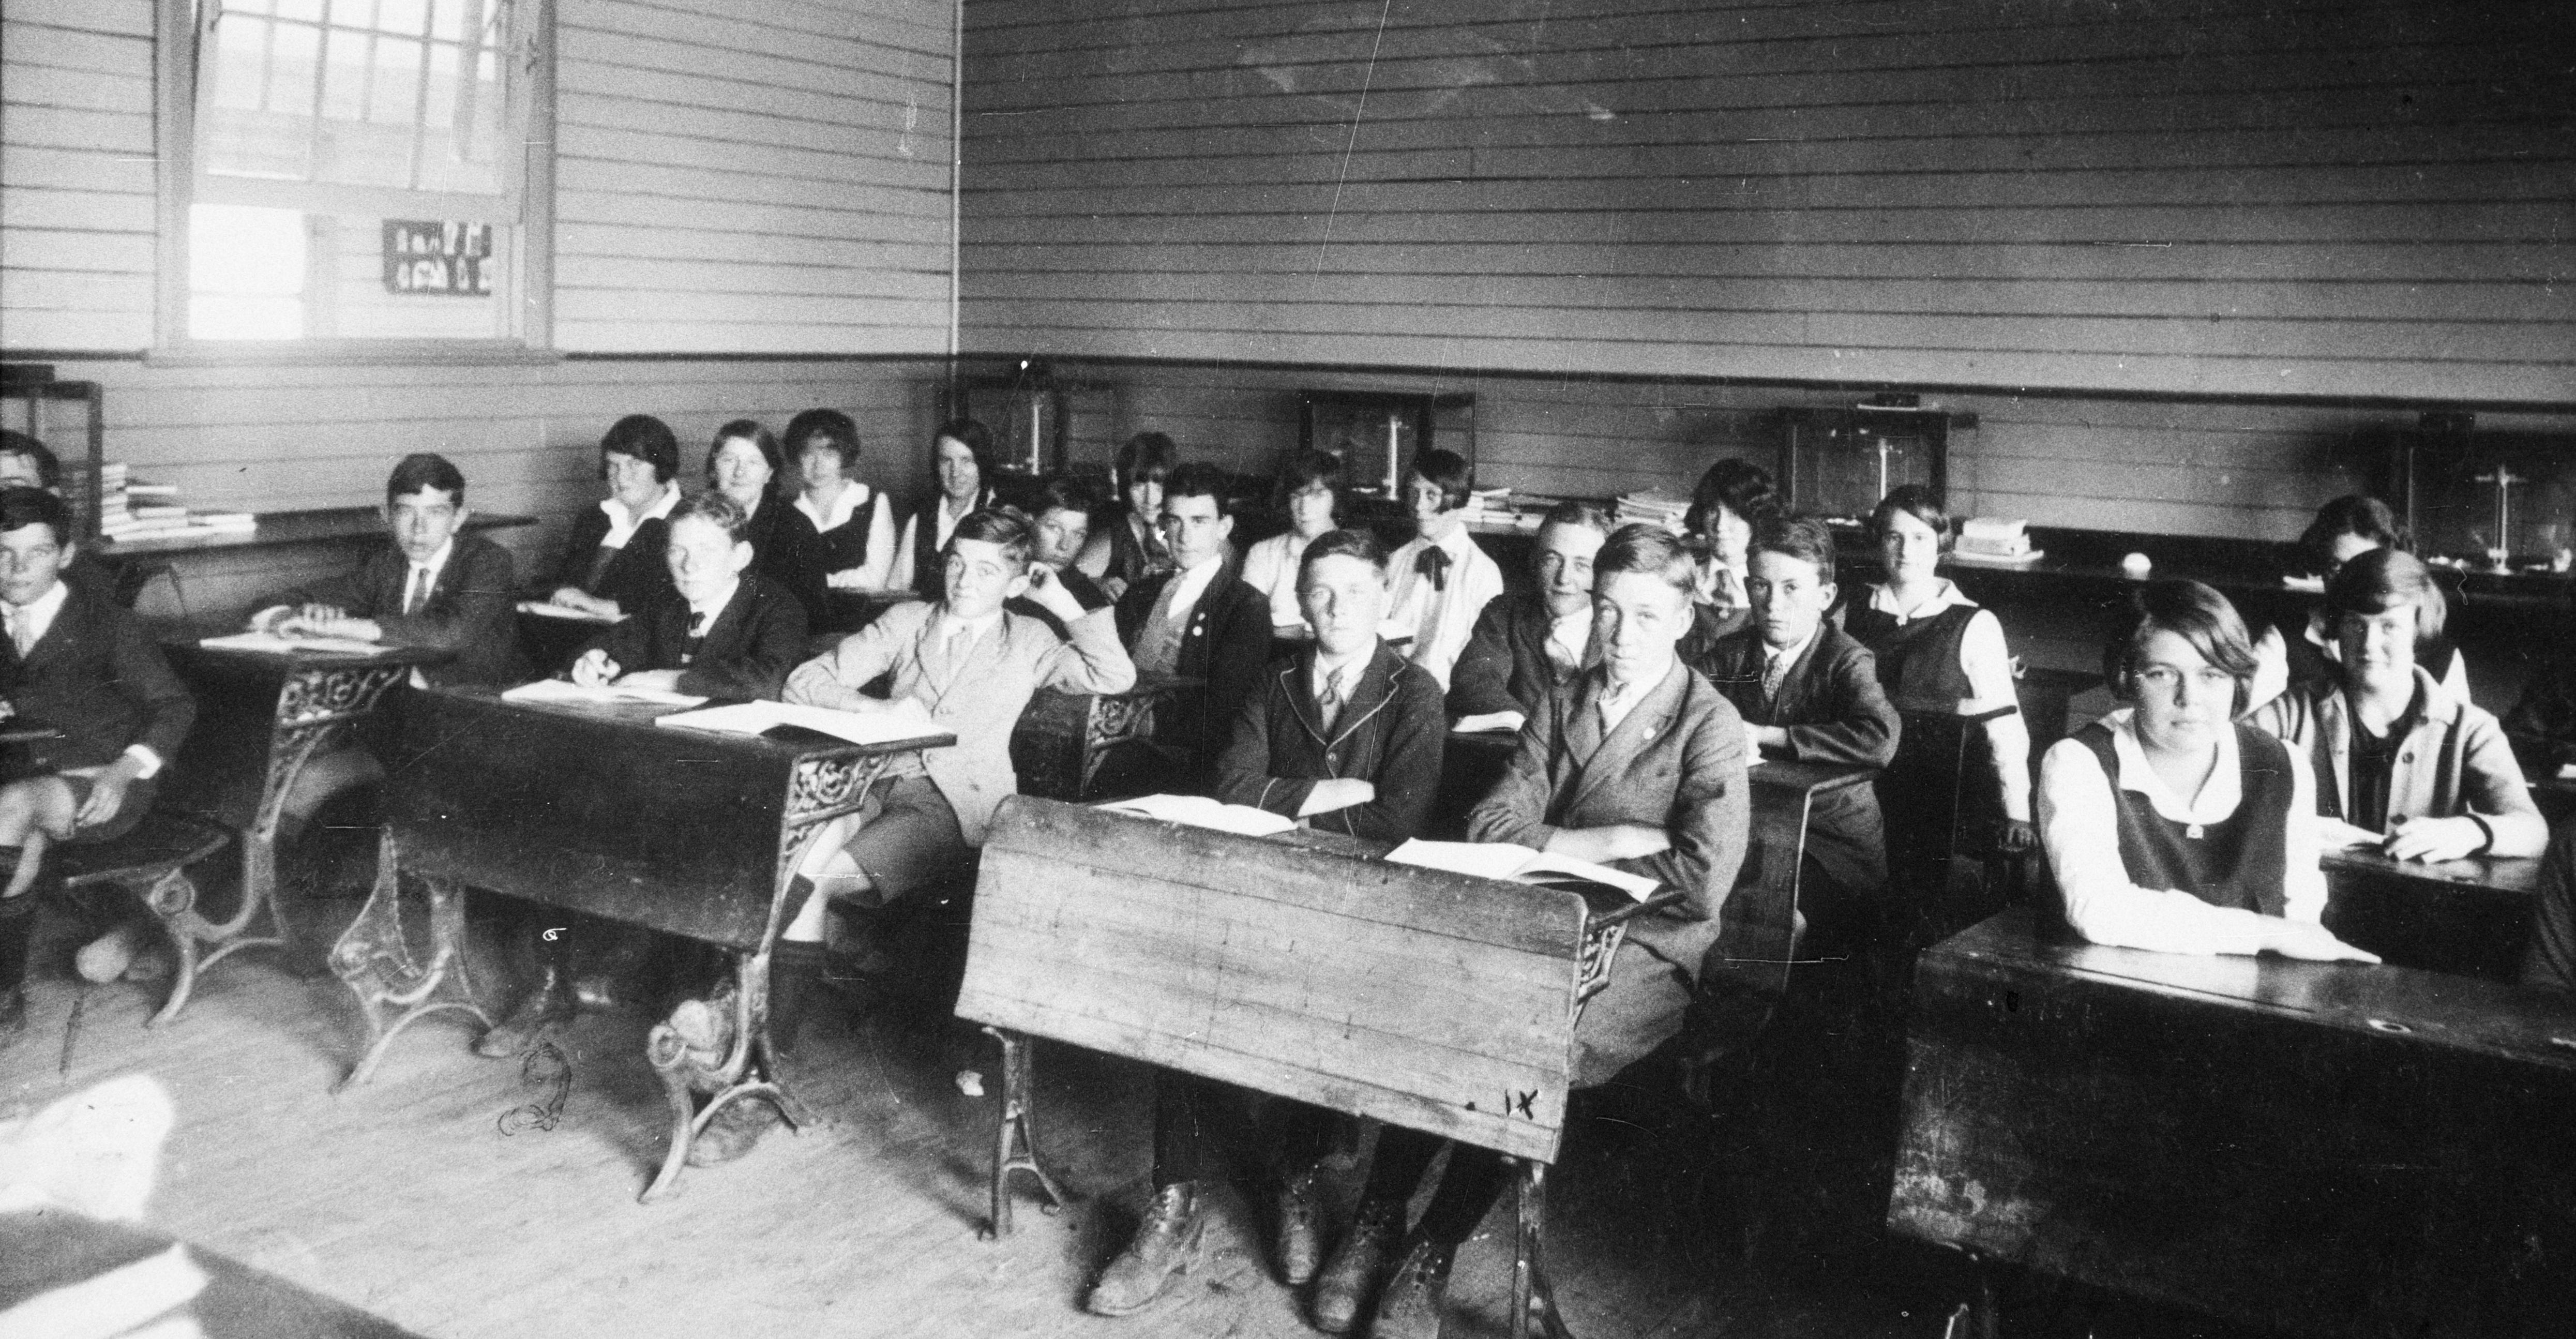 Adolescents coralled in classrooms, Deniliquen Intermediate High School, c 1935. State Library of New South Wales.